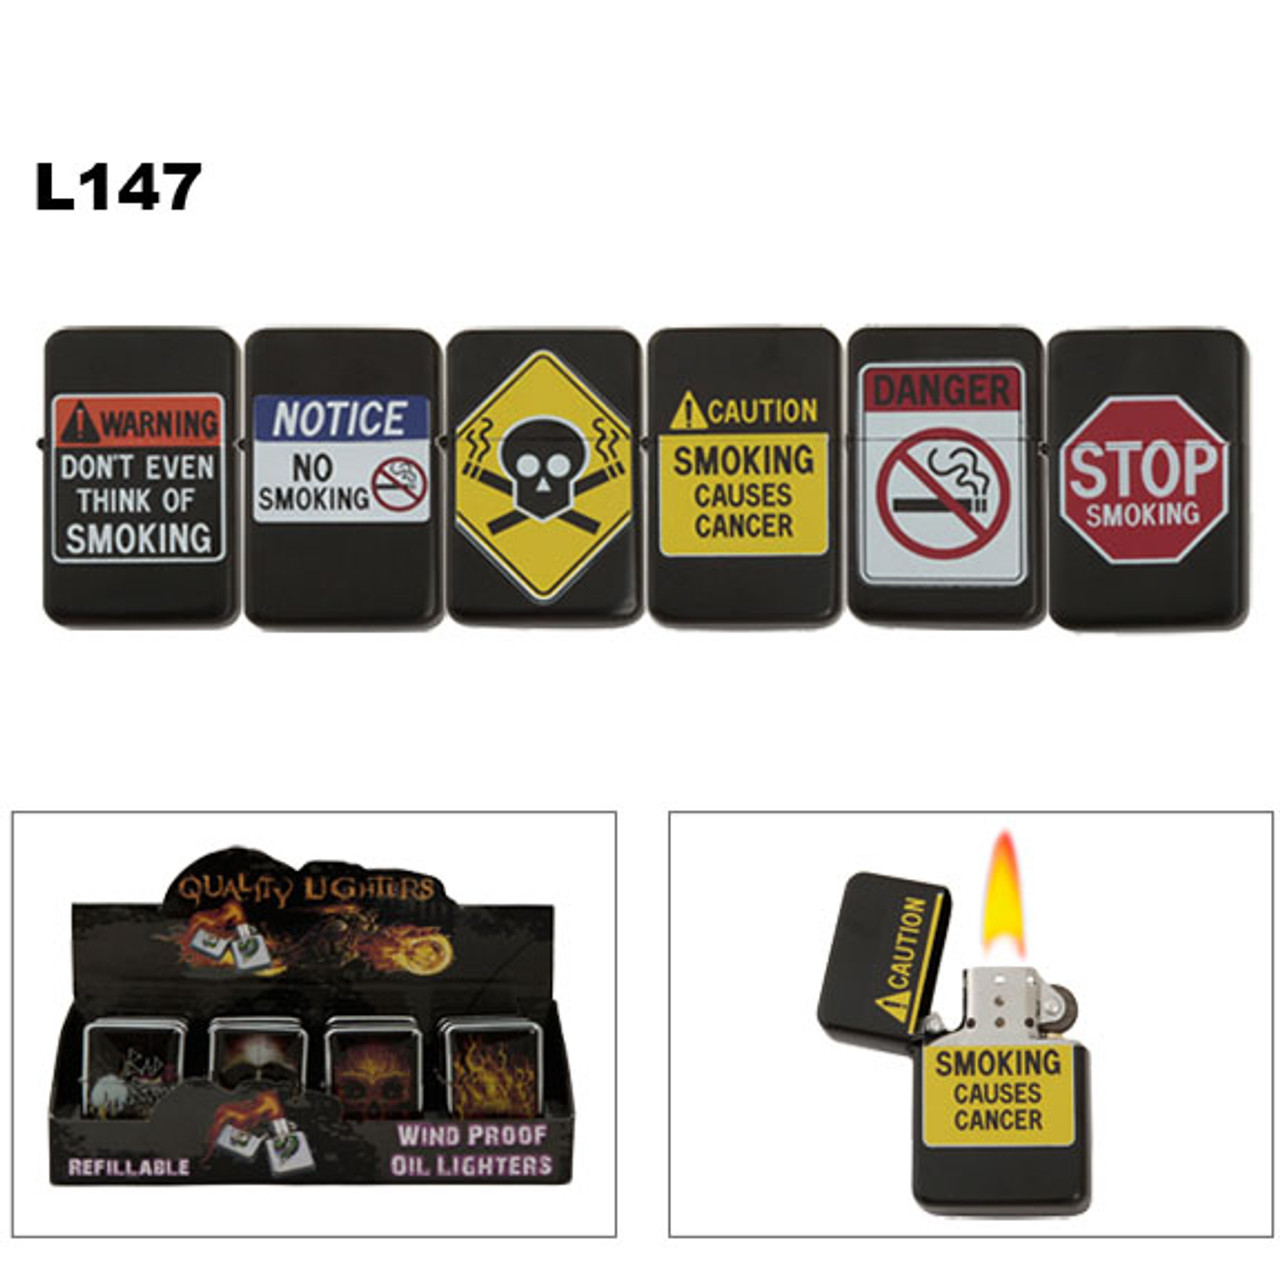 Oil Lighters | Stop Smoking